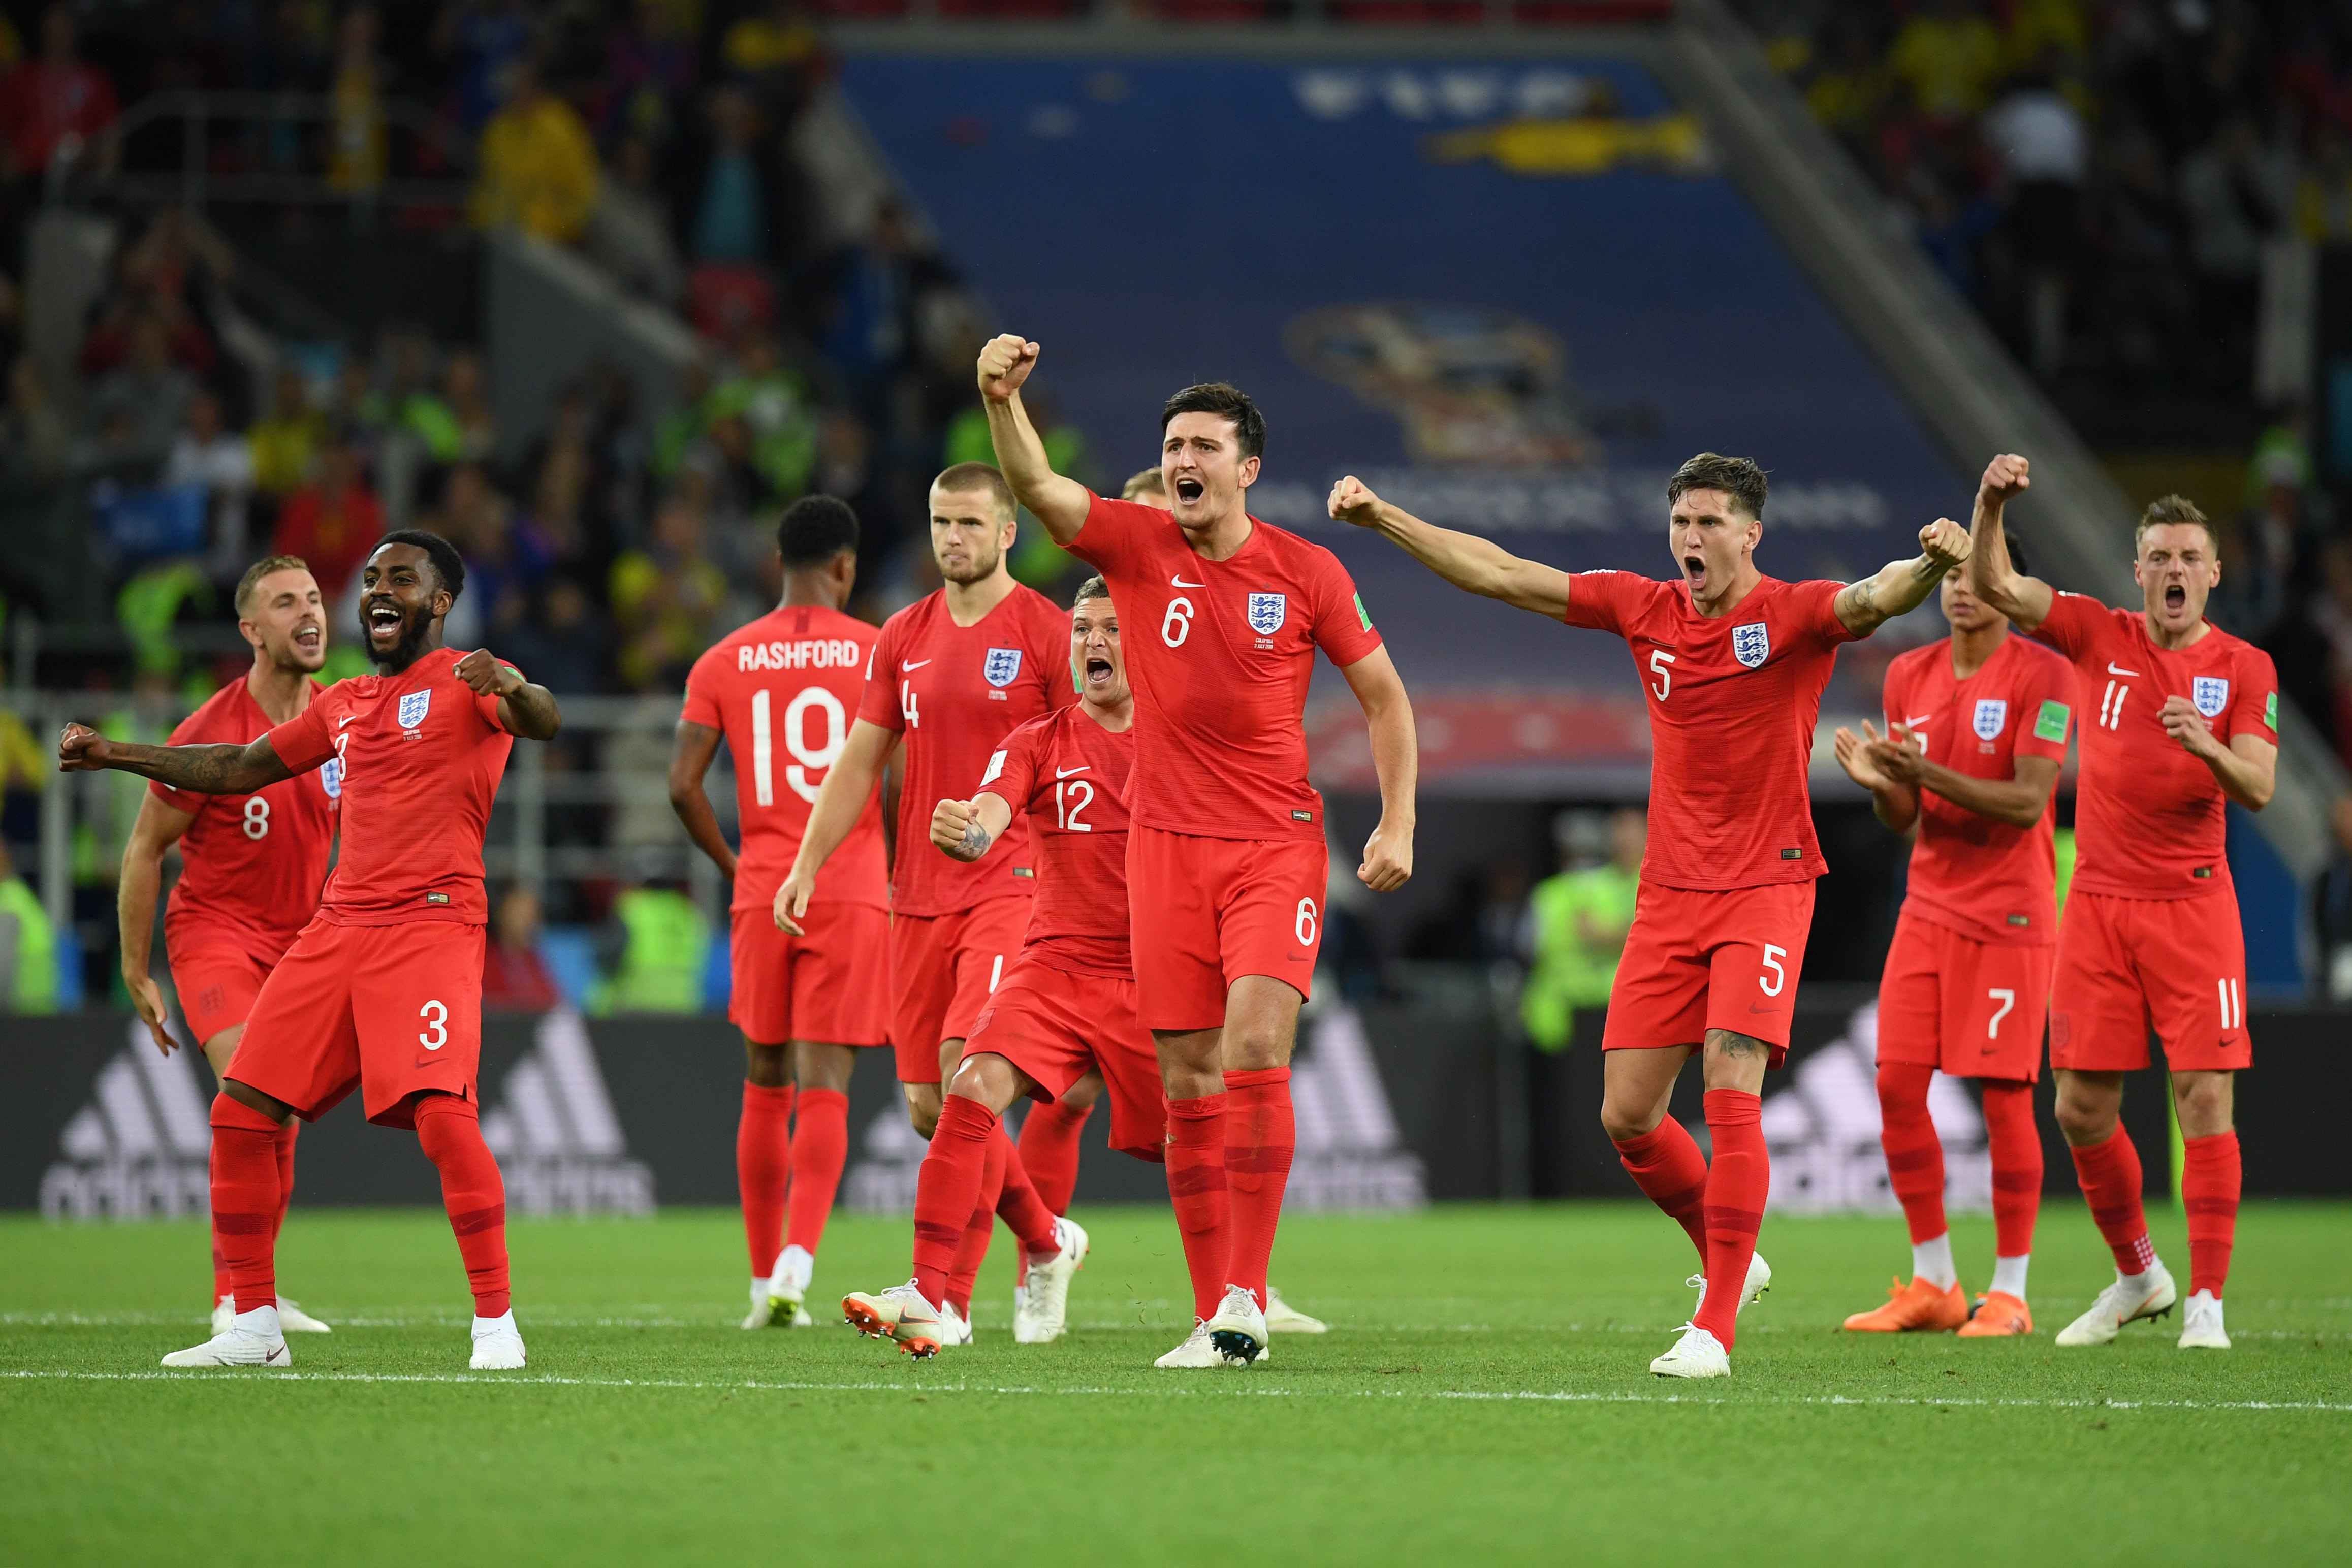 England fans were bloody chuffed after Eric Dier scored the winning PK against Colombia